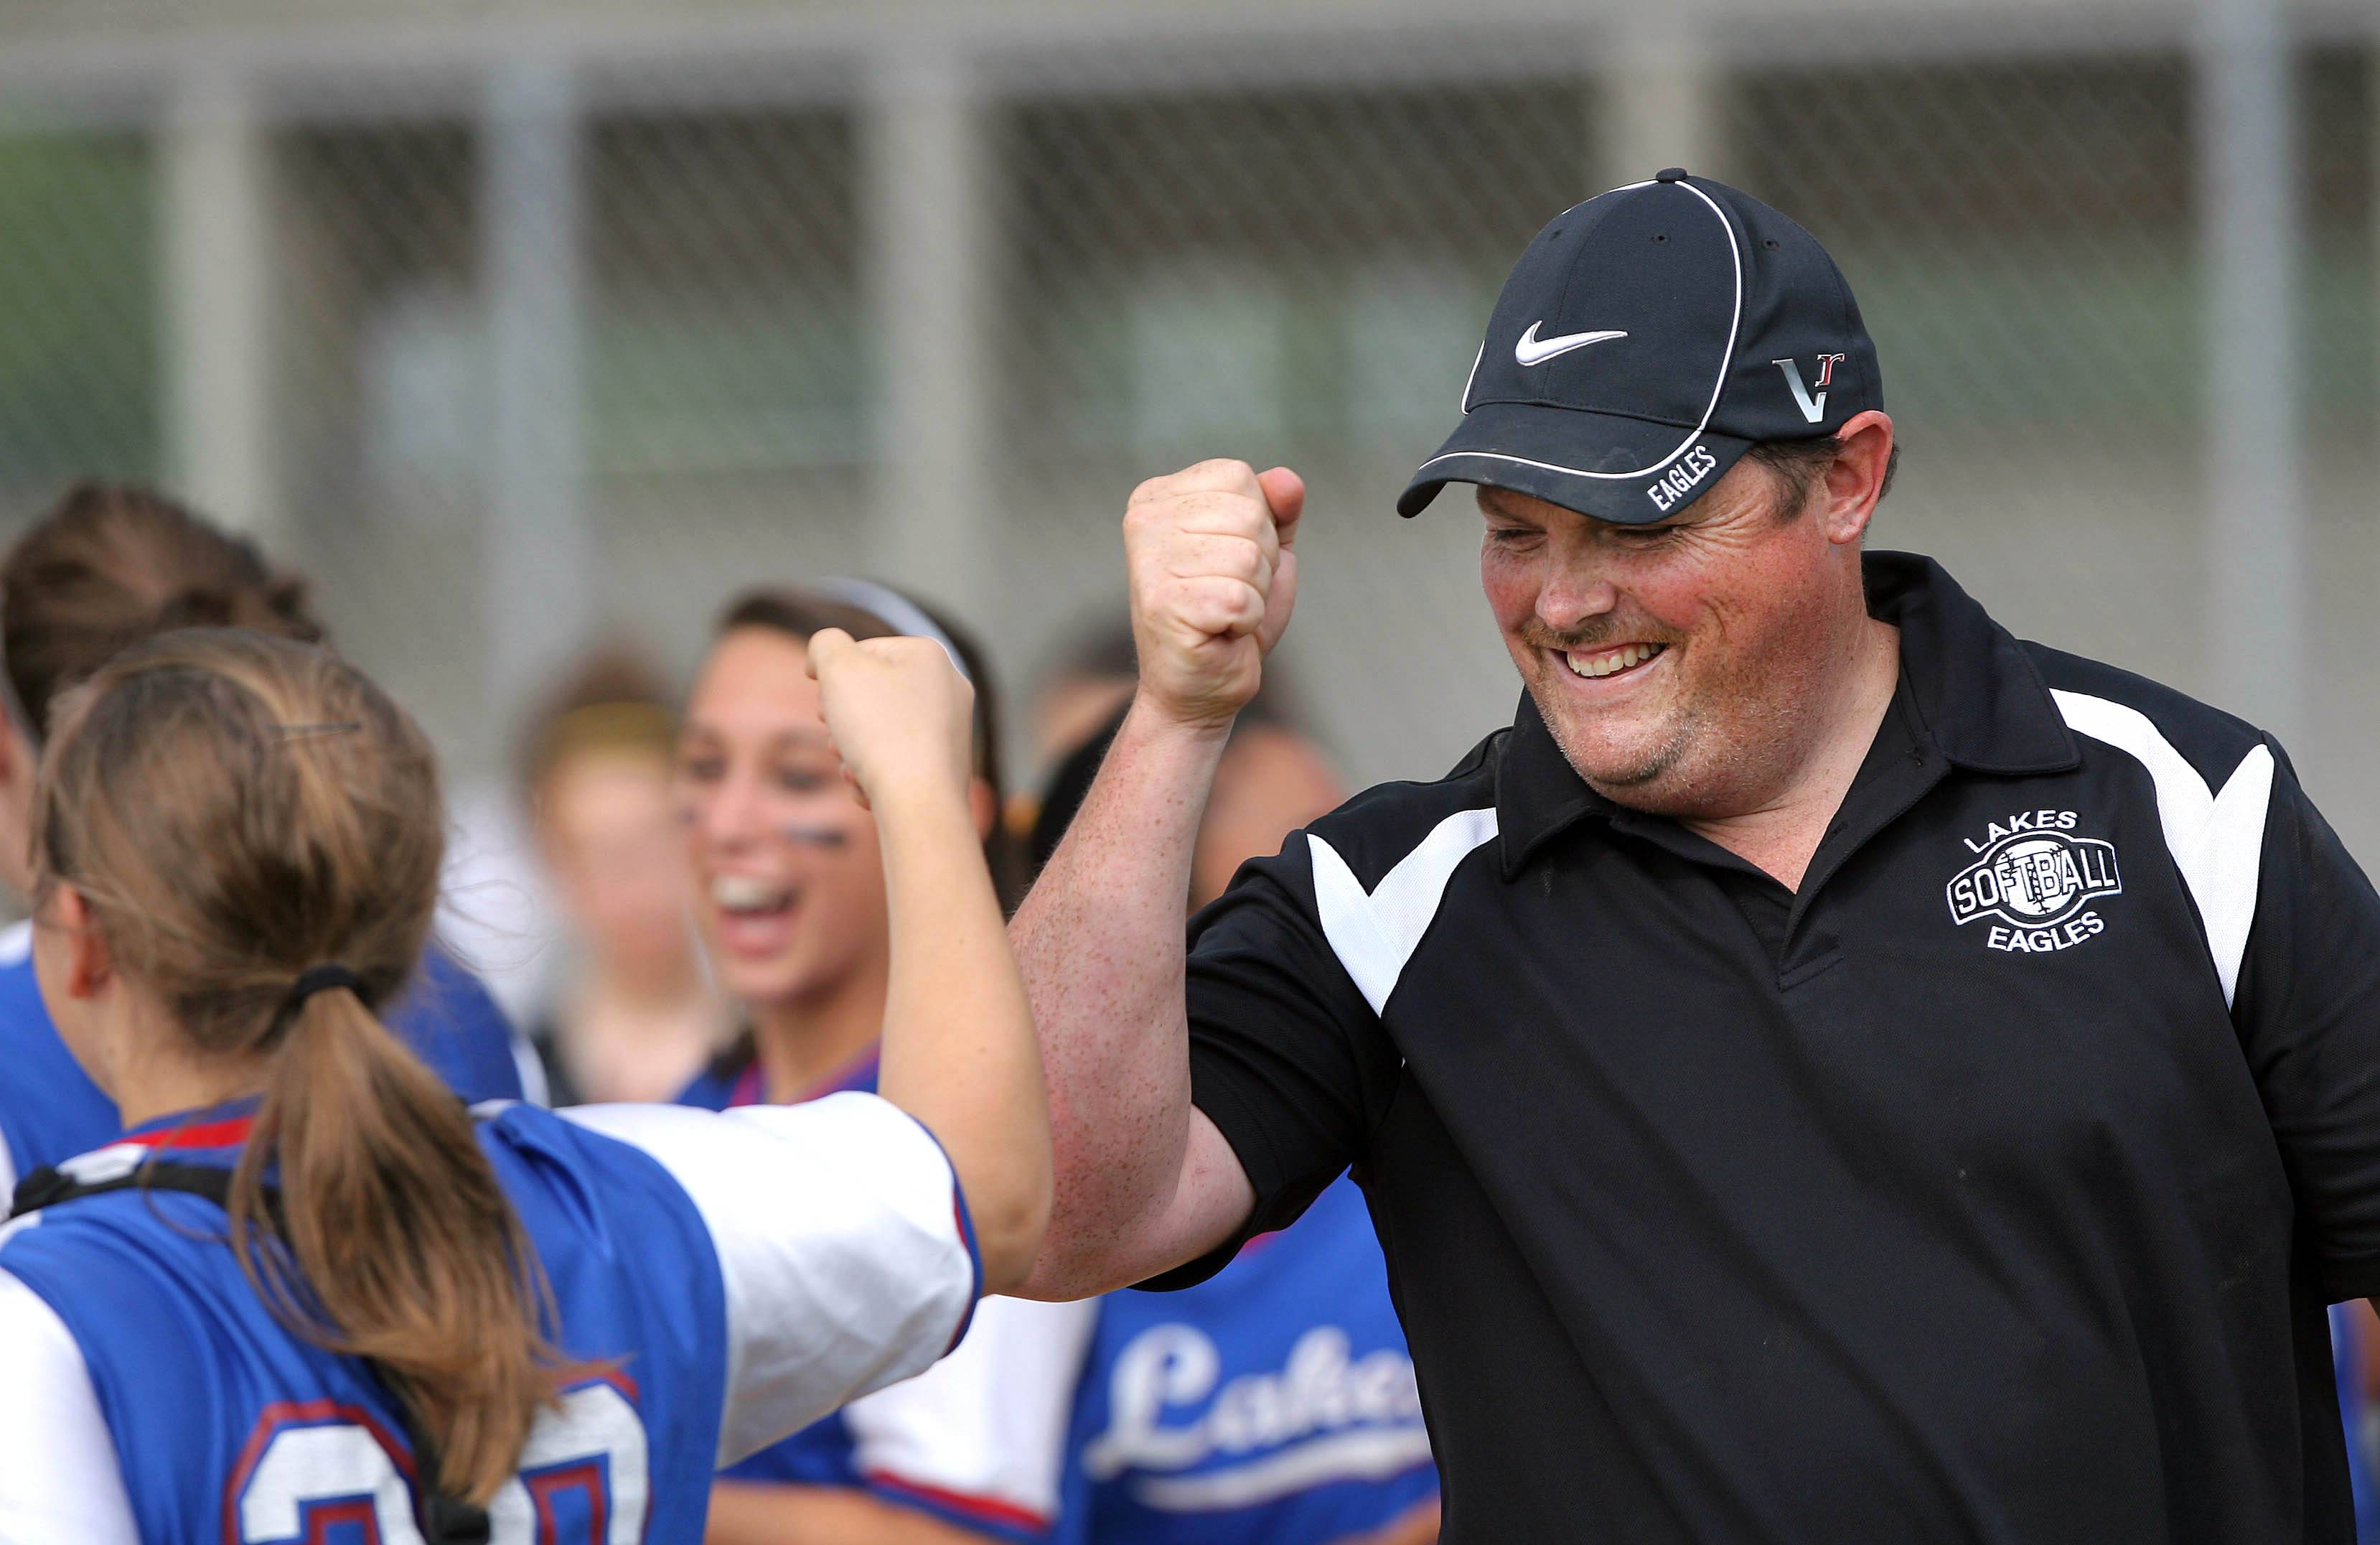 Lakes softball coach Bill Hamill is ready for the softball season after suffering a heart scare last summer.